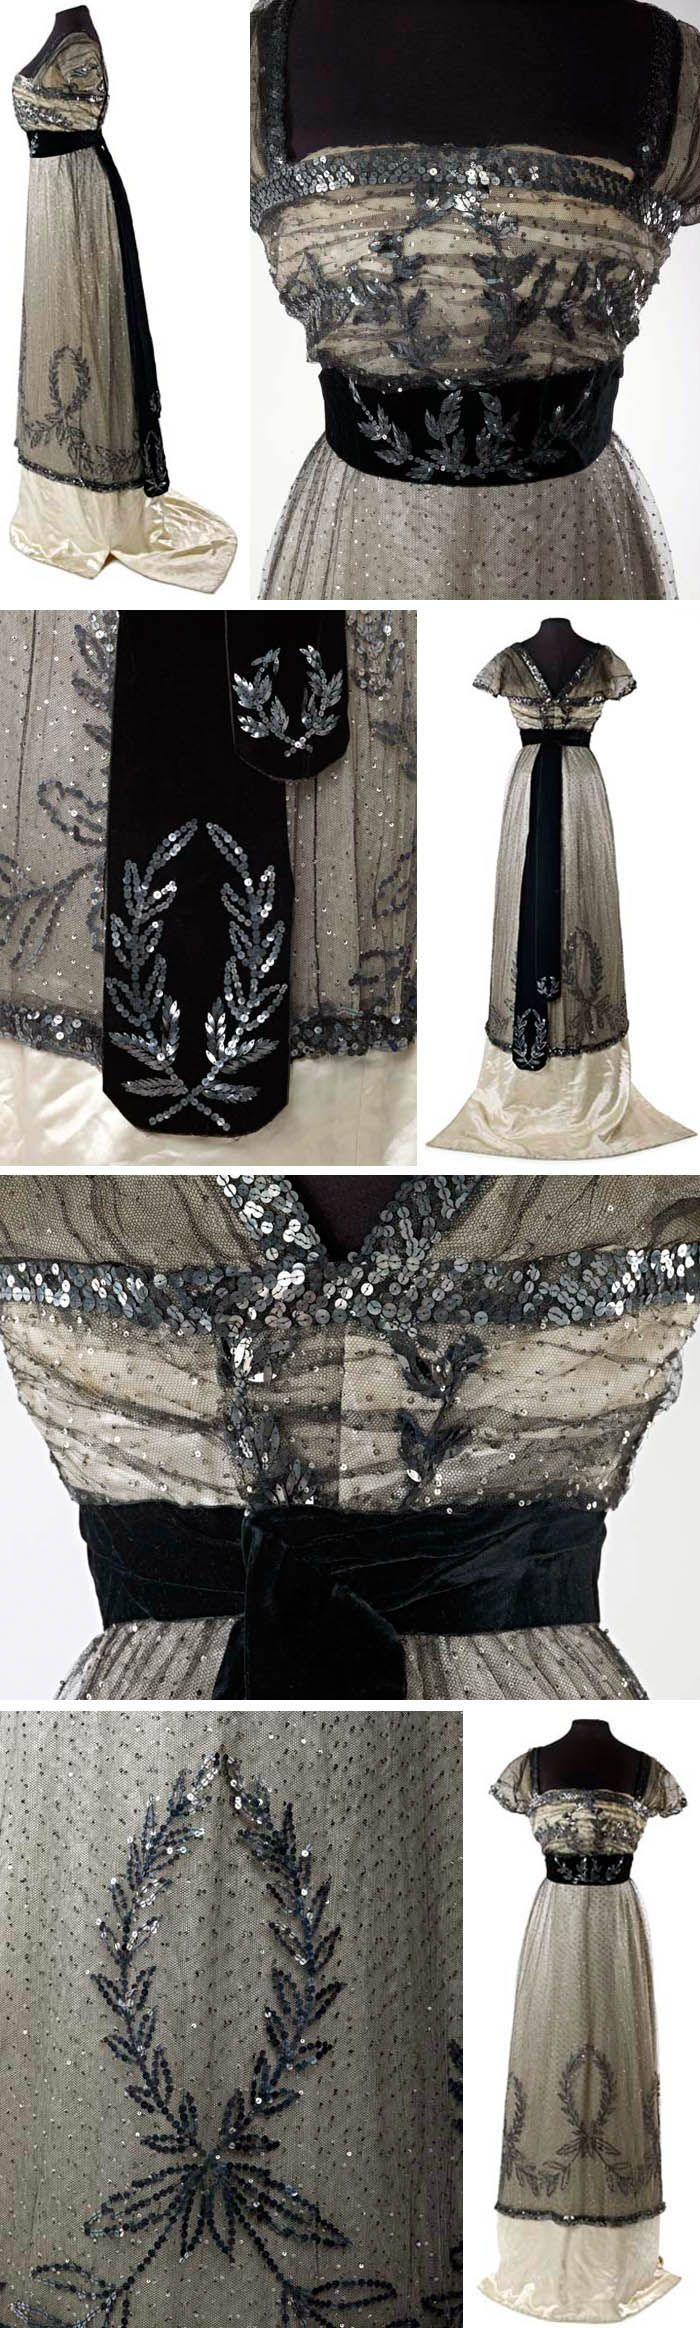 """Evening dress, Mme. Hayward, London, ca. 1909-10. Silk, metal, cotton. This skirt is part of a dress that is included in Janet Arnold's """"Patterns of Fashion: Englishwomen's dresses and their construction ca. 1860-1940."""" She describes it as """"an evening dress in black silk net covered with tiny 1/8"""" silver sequins over an ivory satin underskirt."""" Museum of London"""